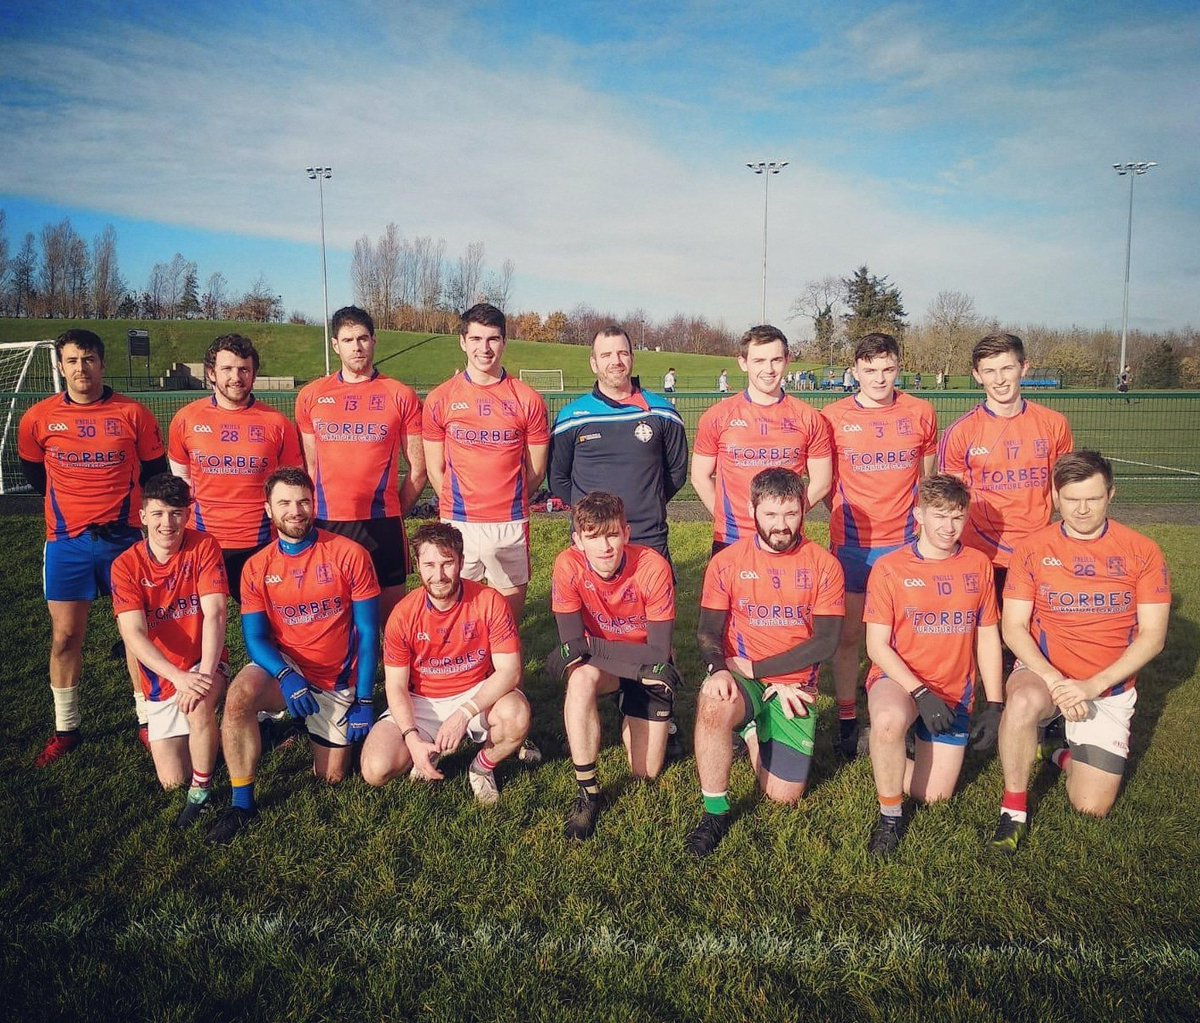 test Twitter Media - Well done to the TES team that played in the Ulster GAA Interfirms today in Cookstown, successfully making it all the way to the semi finals. https://t.co/1bygbz2ivm